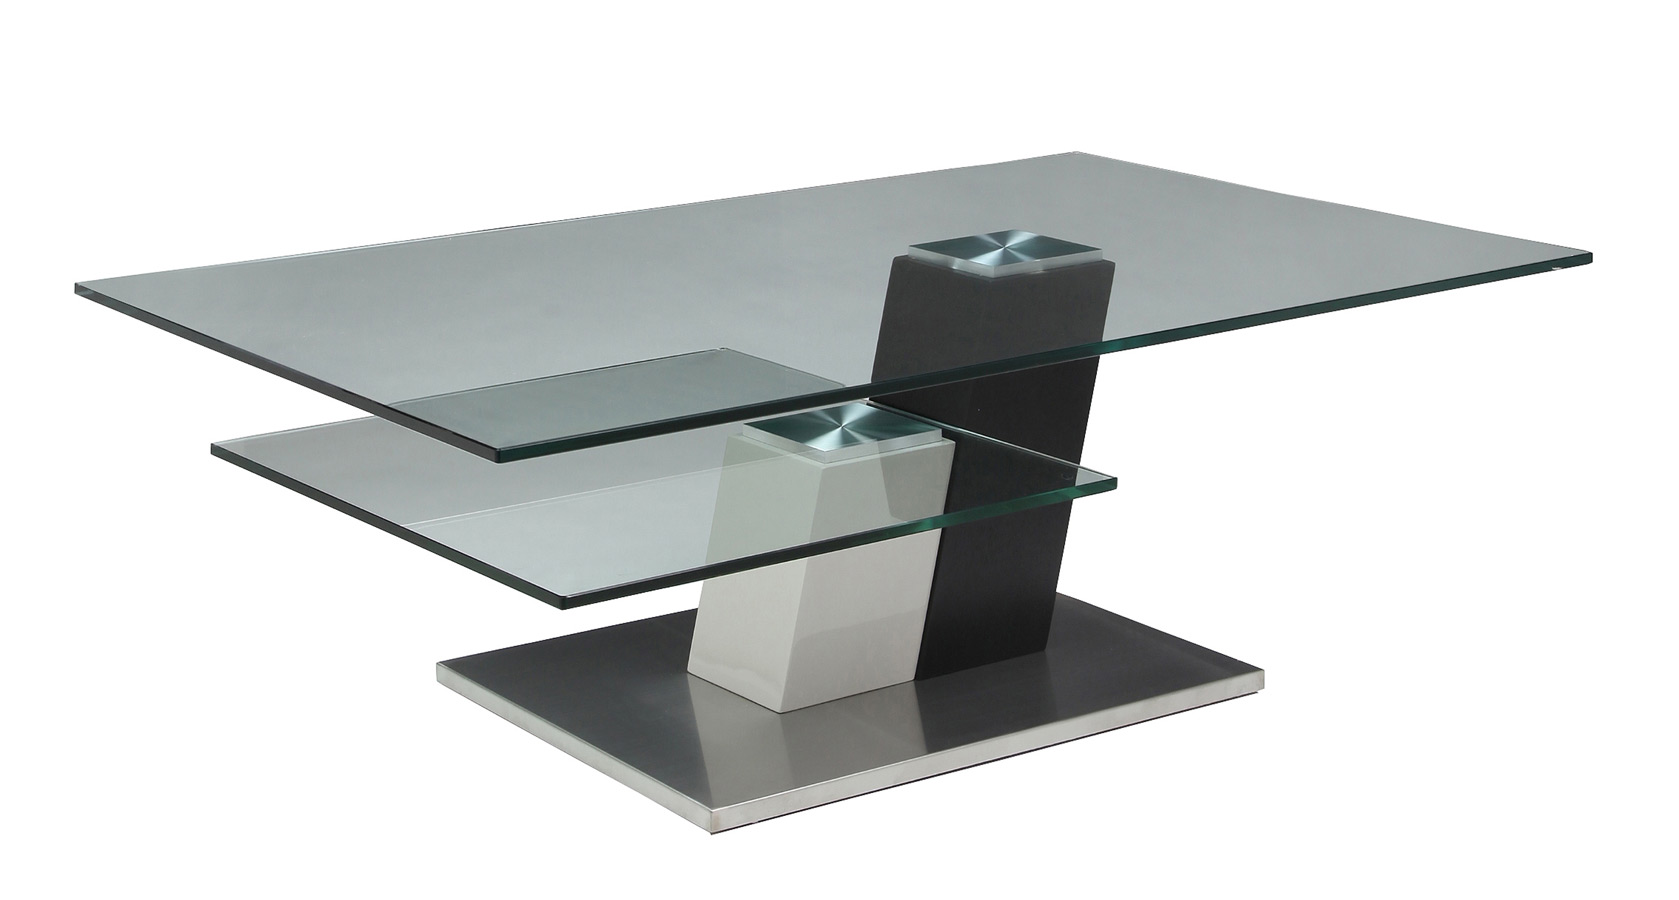 stainless steel coffee table images 9k22